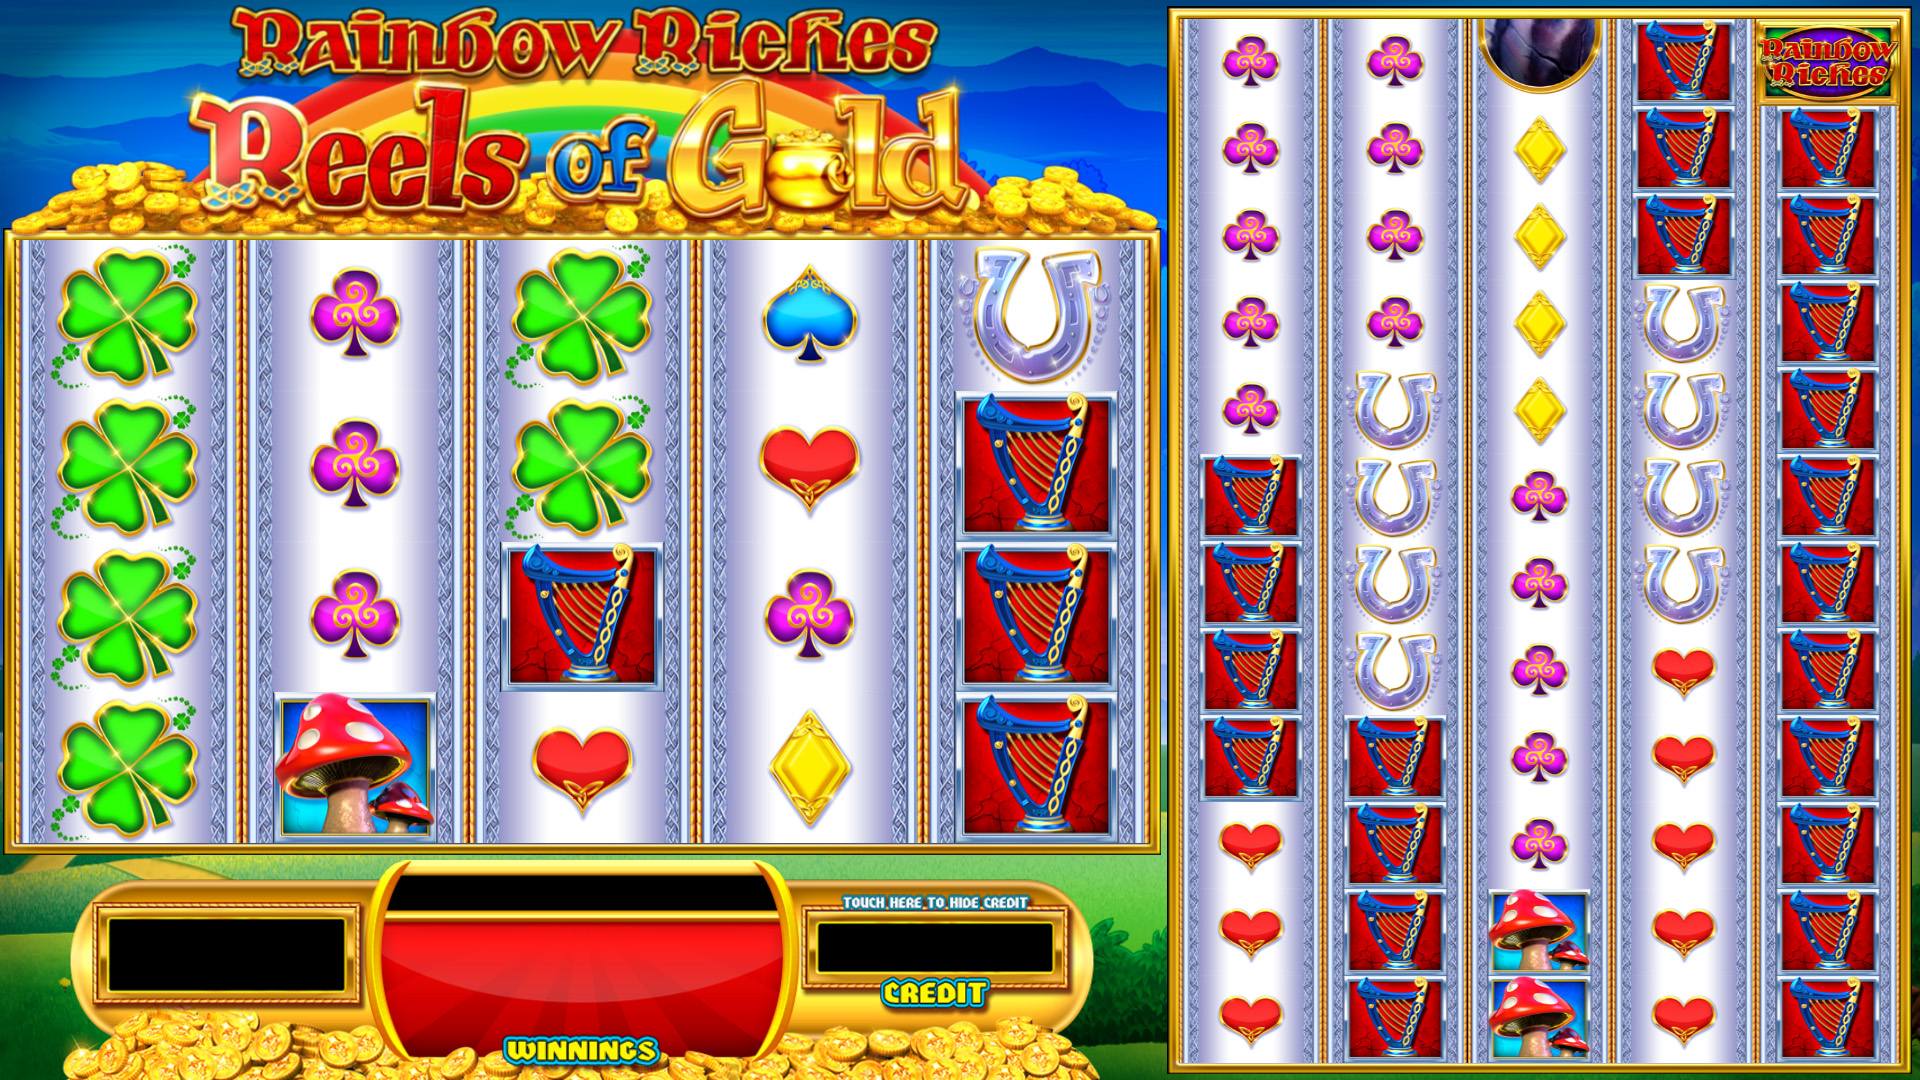 Rainbow Riches: Reels of Gold Slot Game